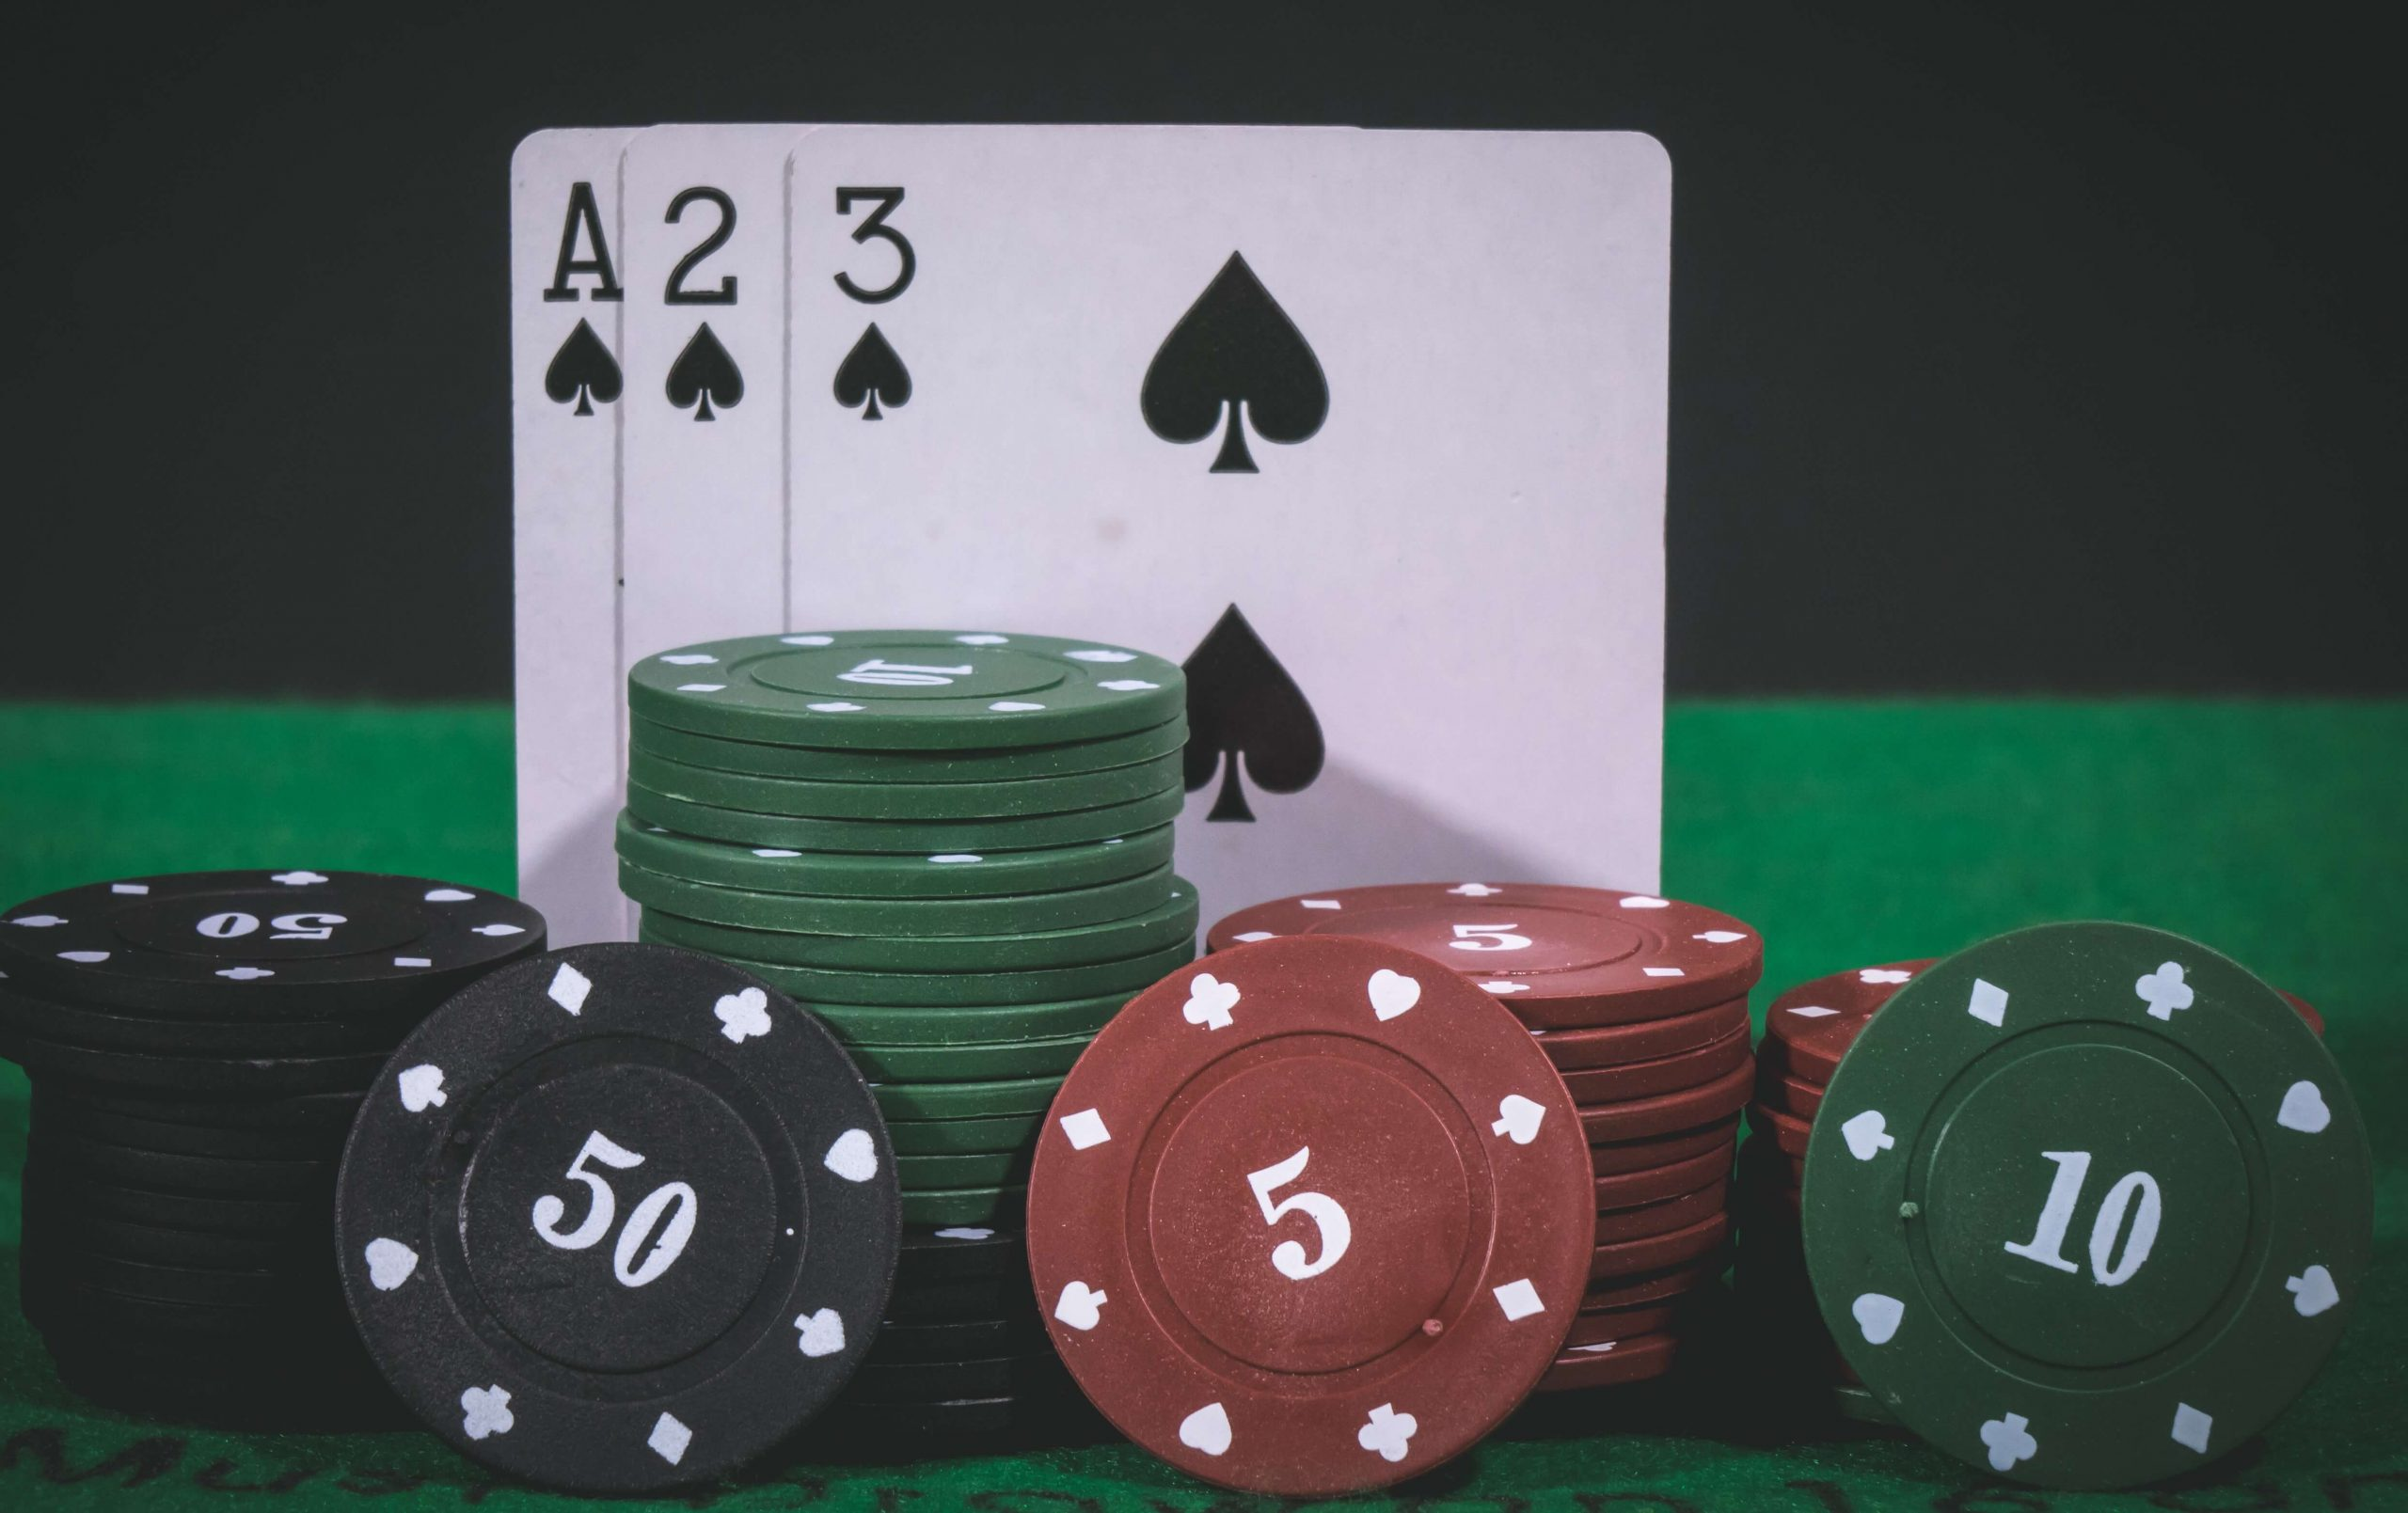 3cards_and_chips